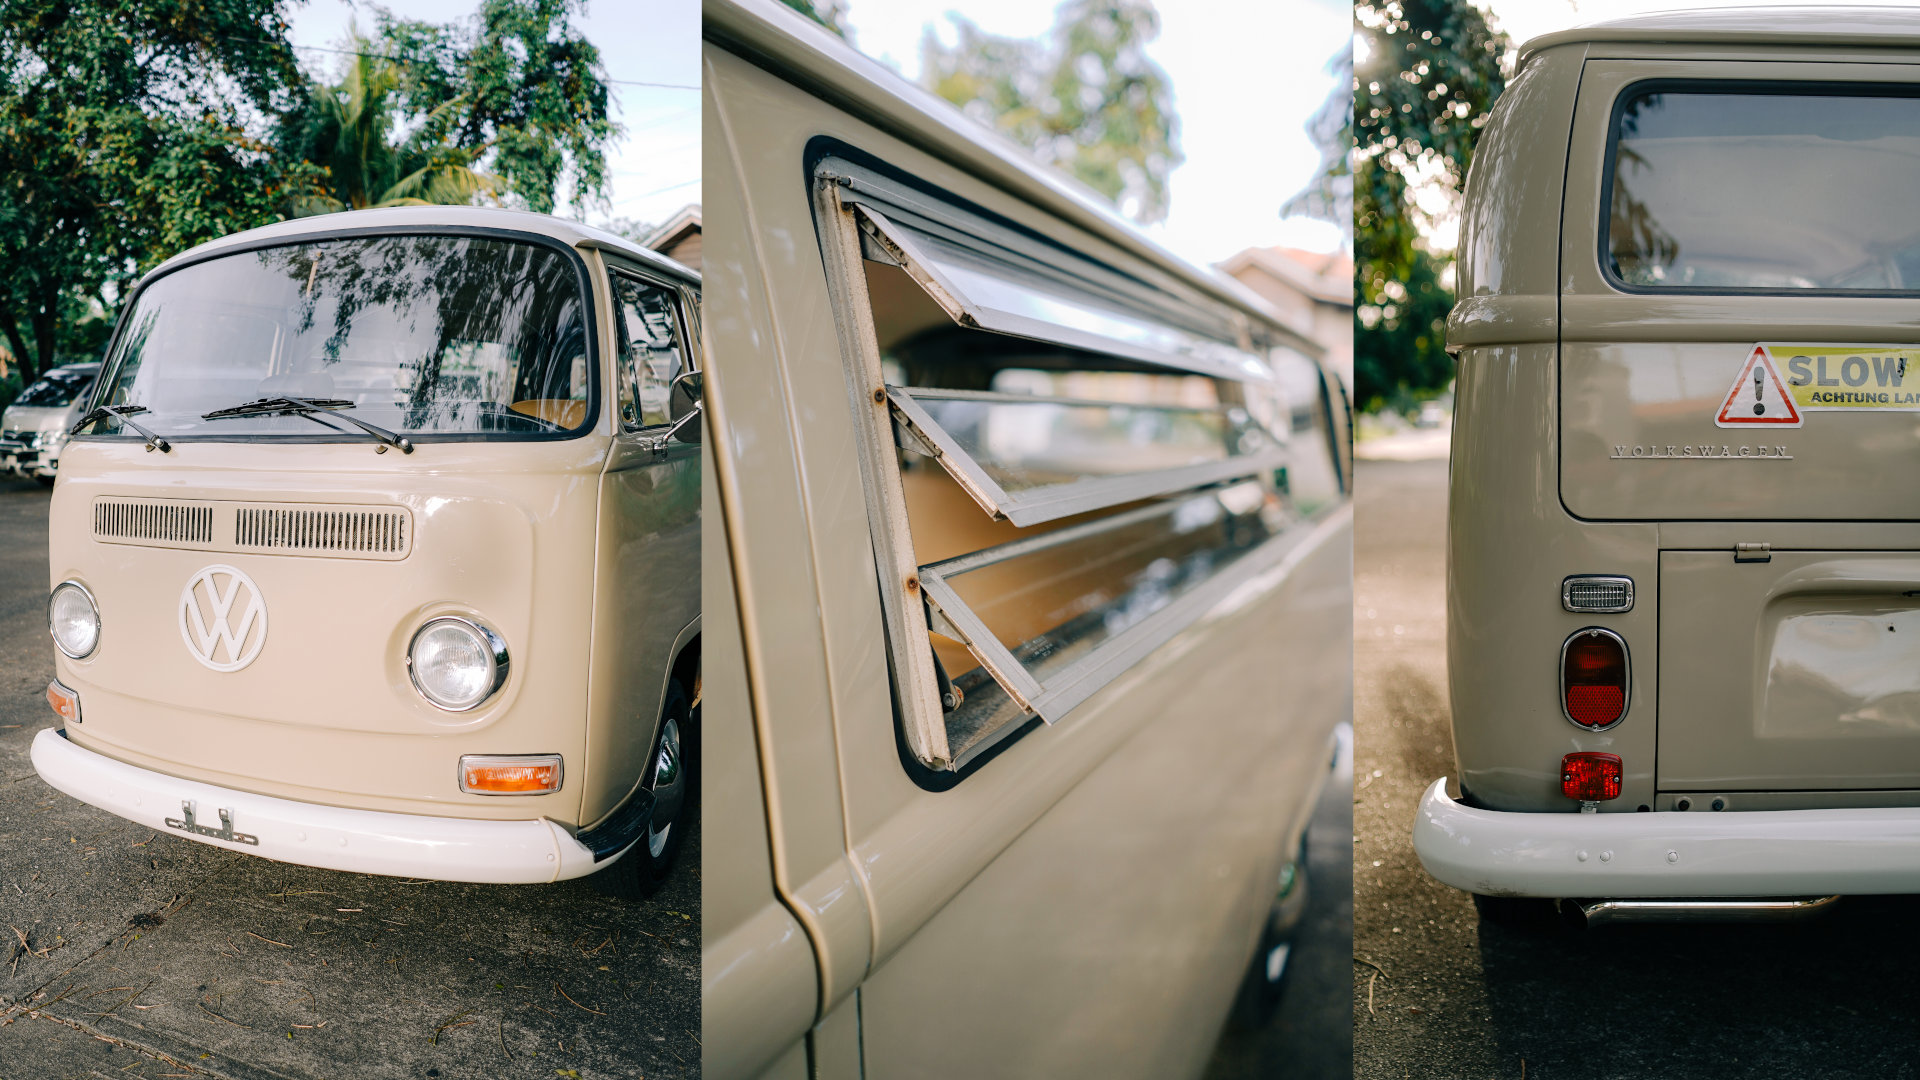 Volkswagen Type 2 front, windows, and rear features